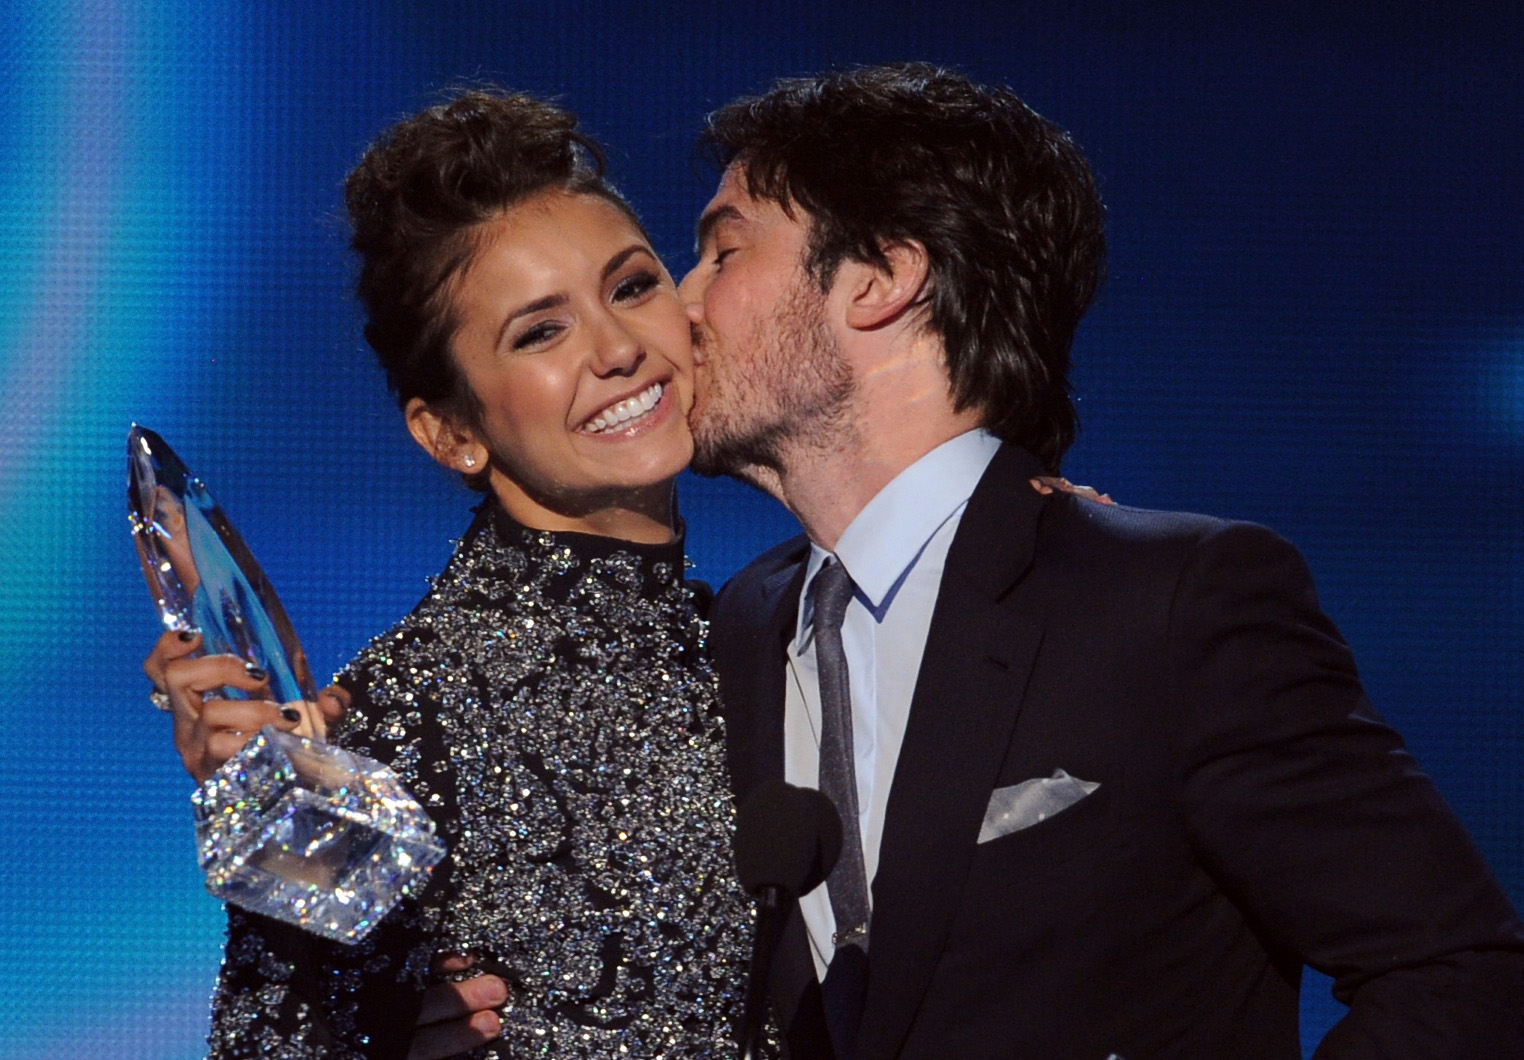 Nina Dobrev Dating Ian Somerhalders Friend